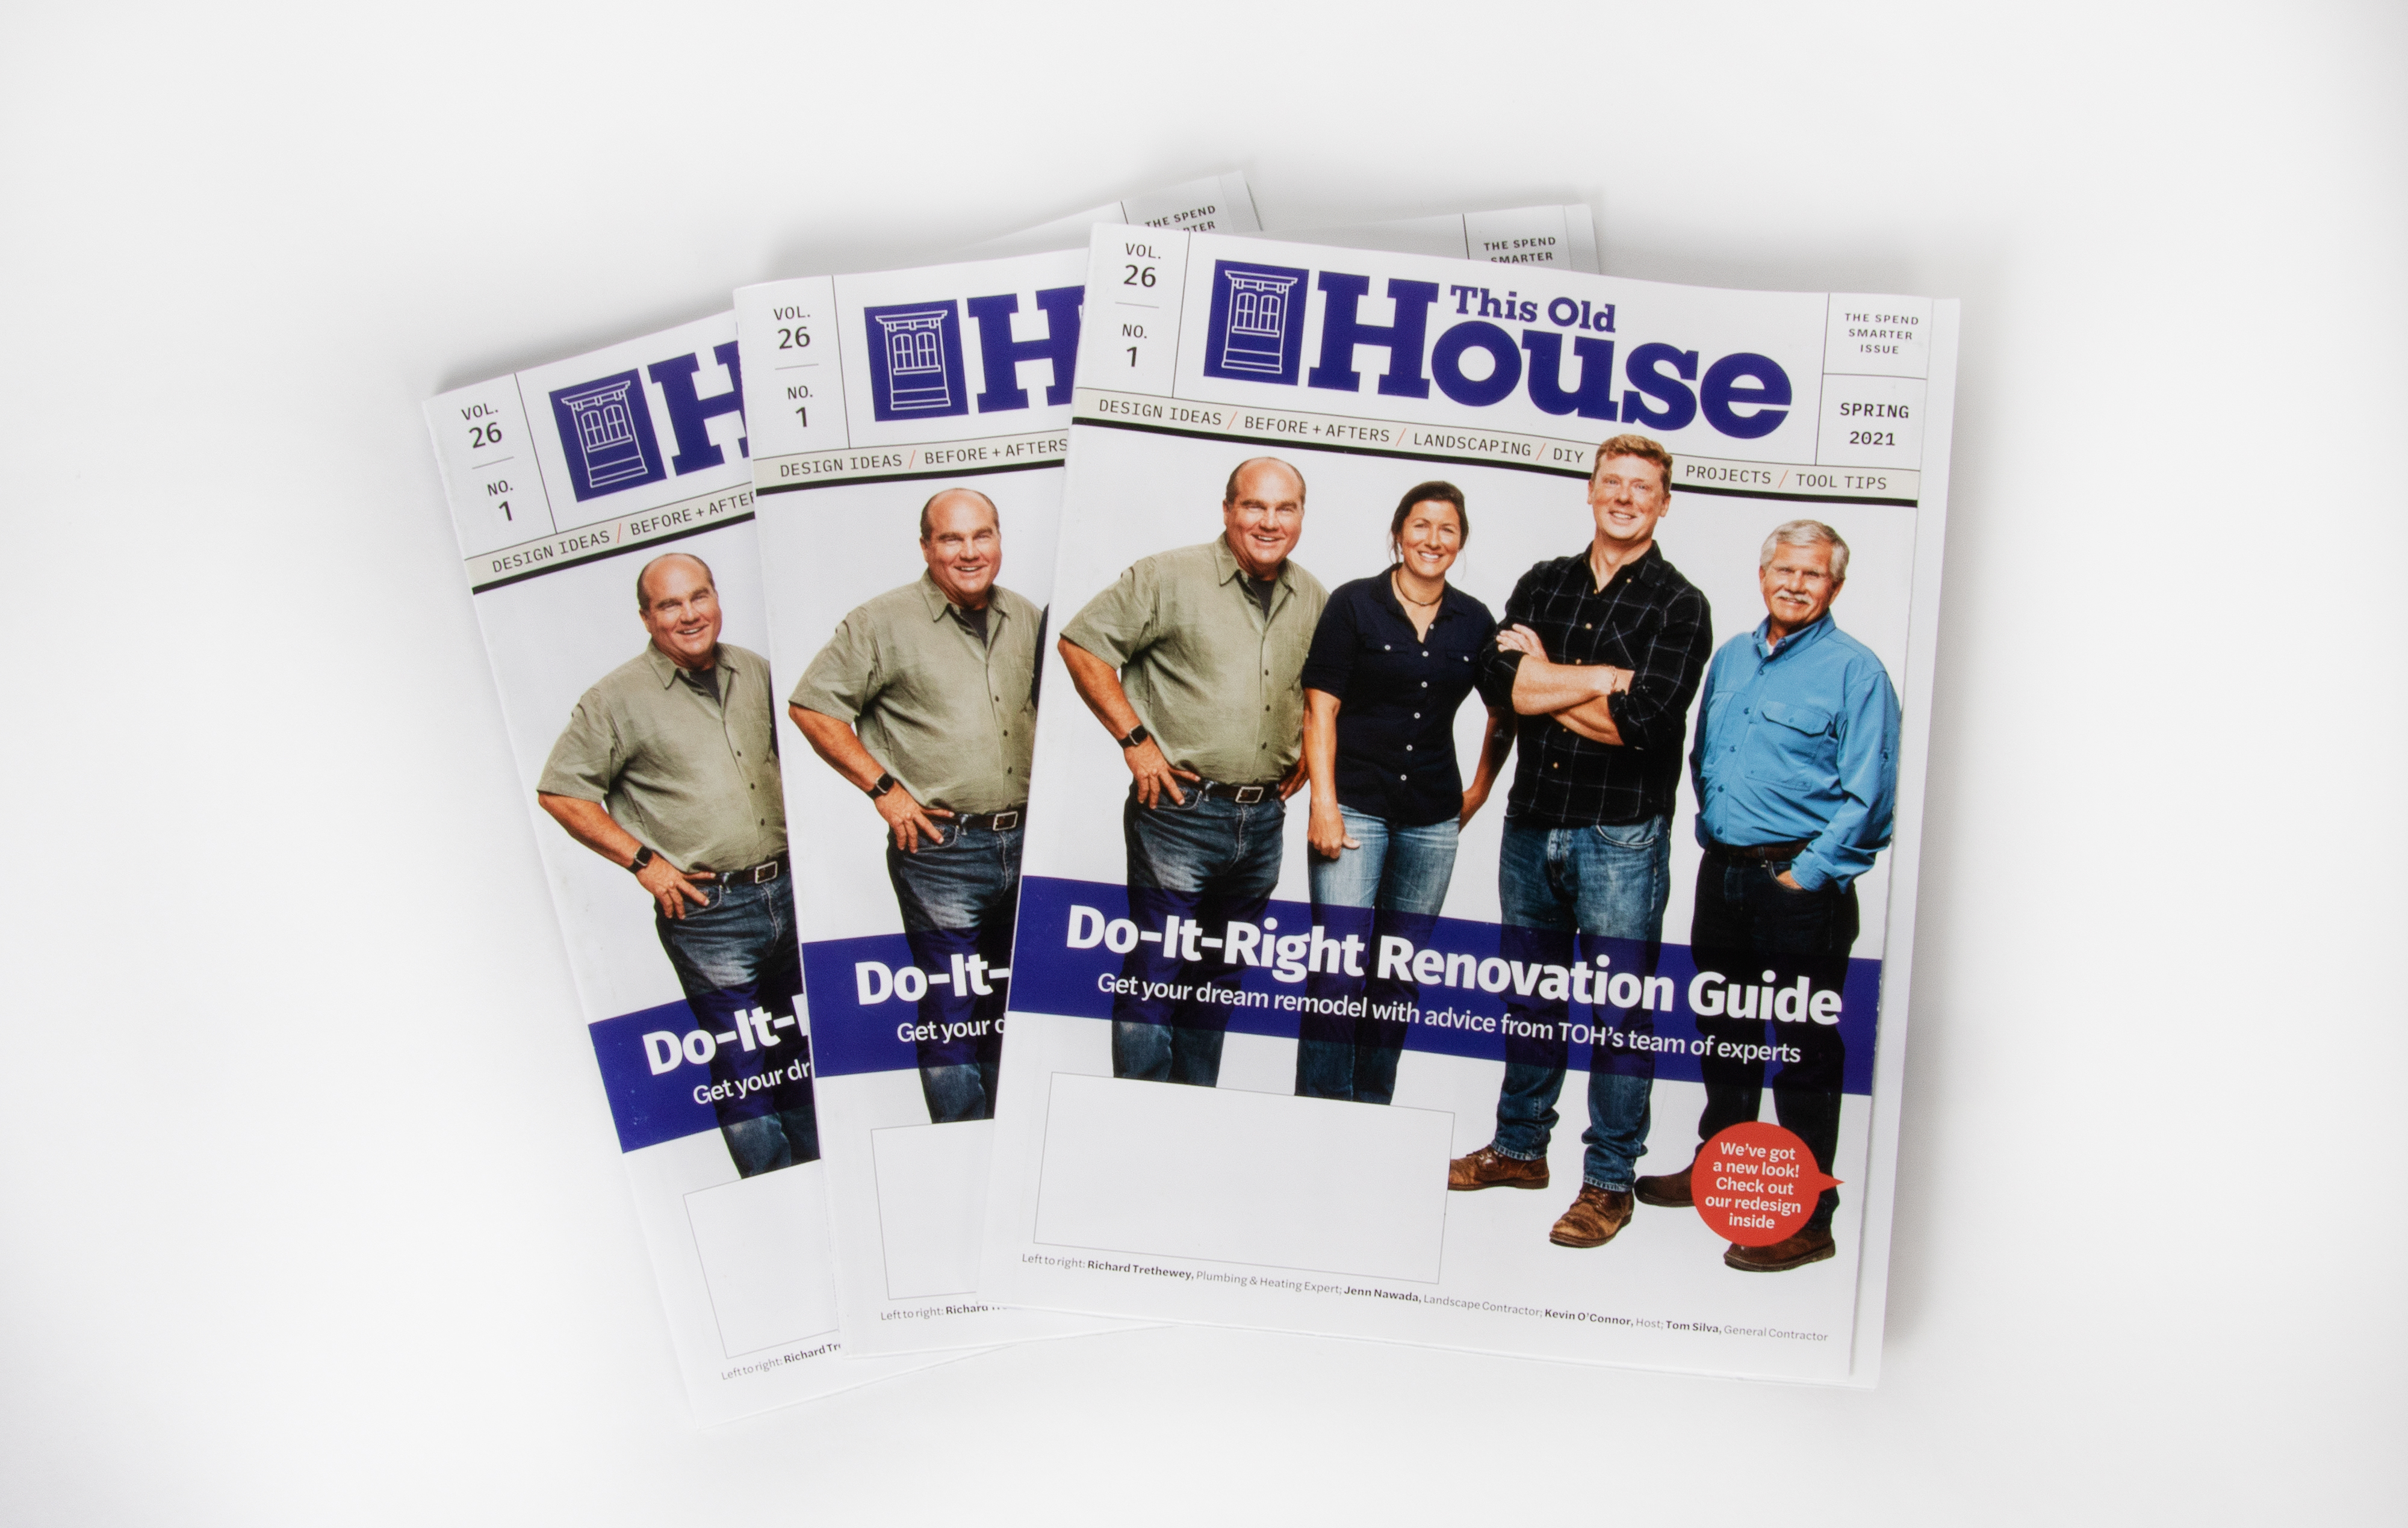 Spring 2021 issue of This Old House magazine